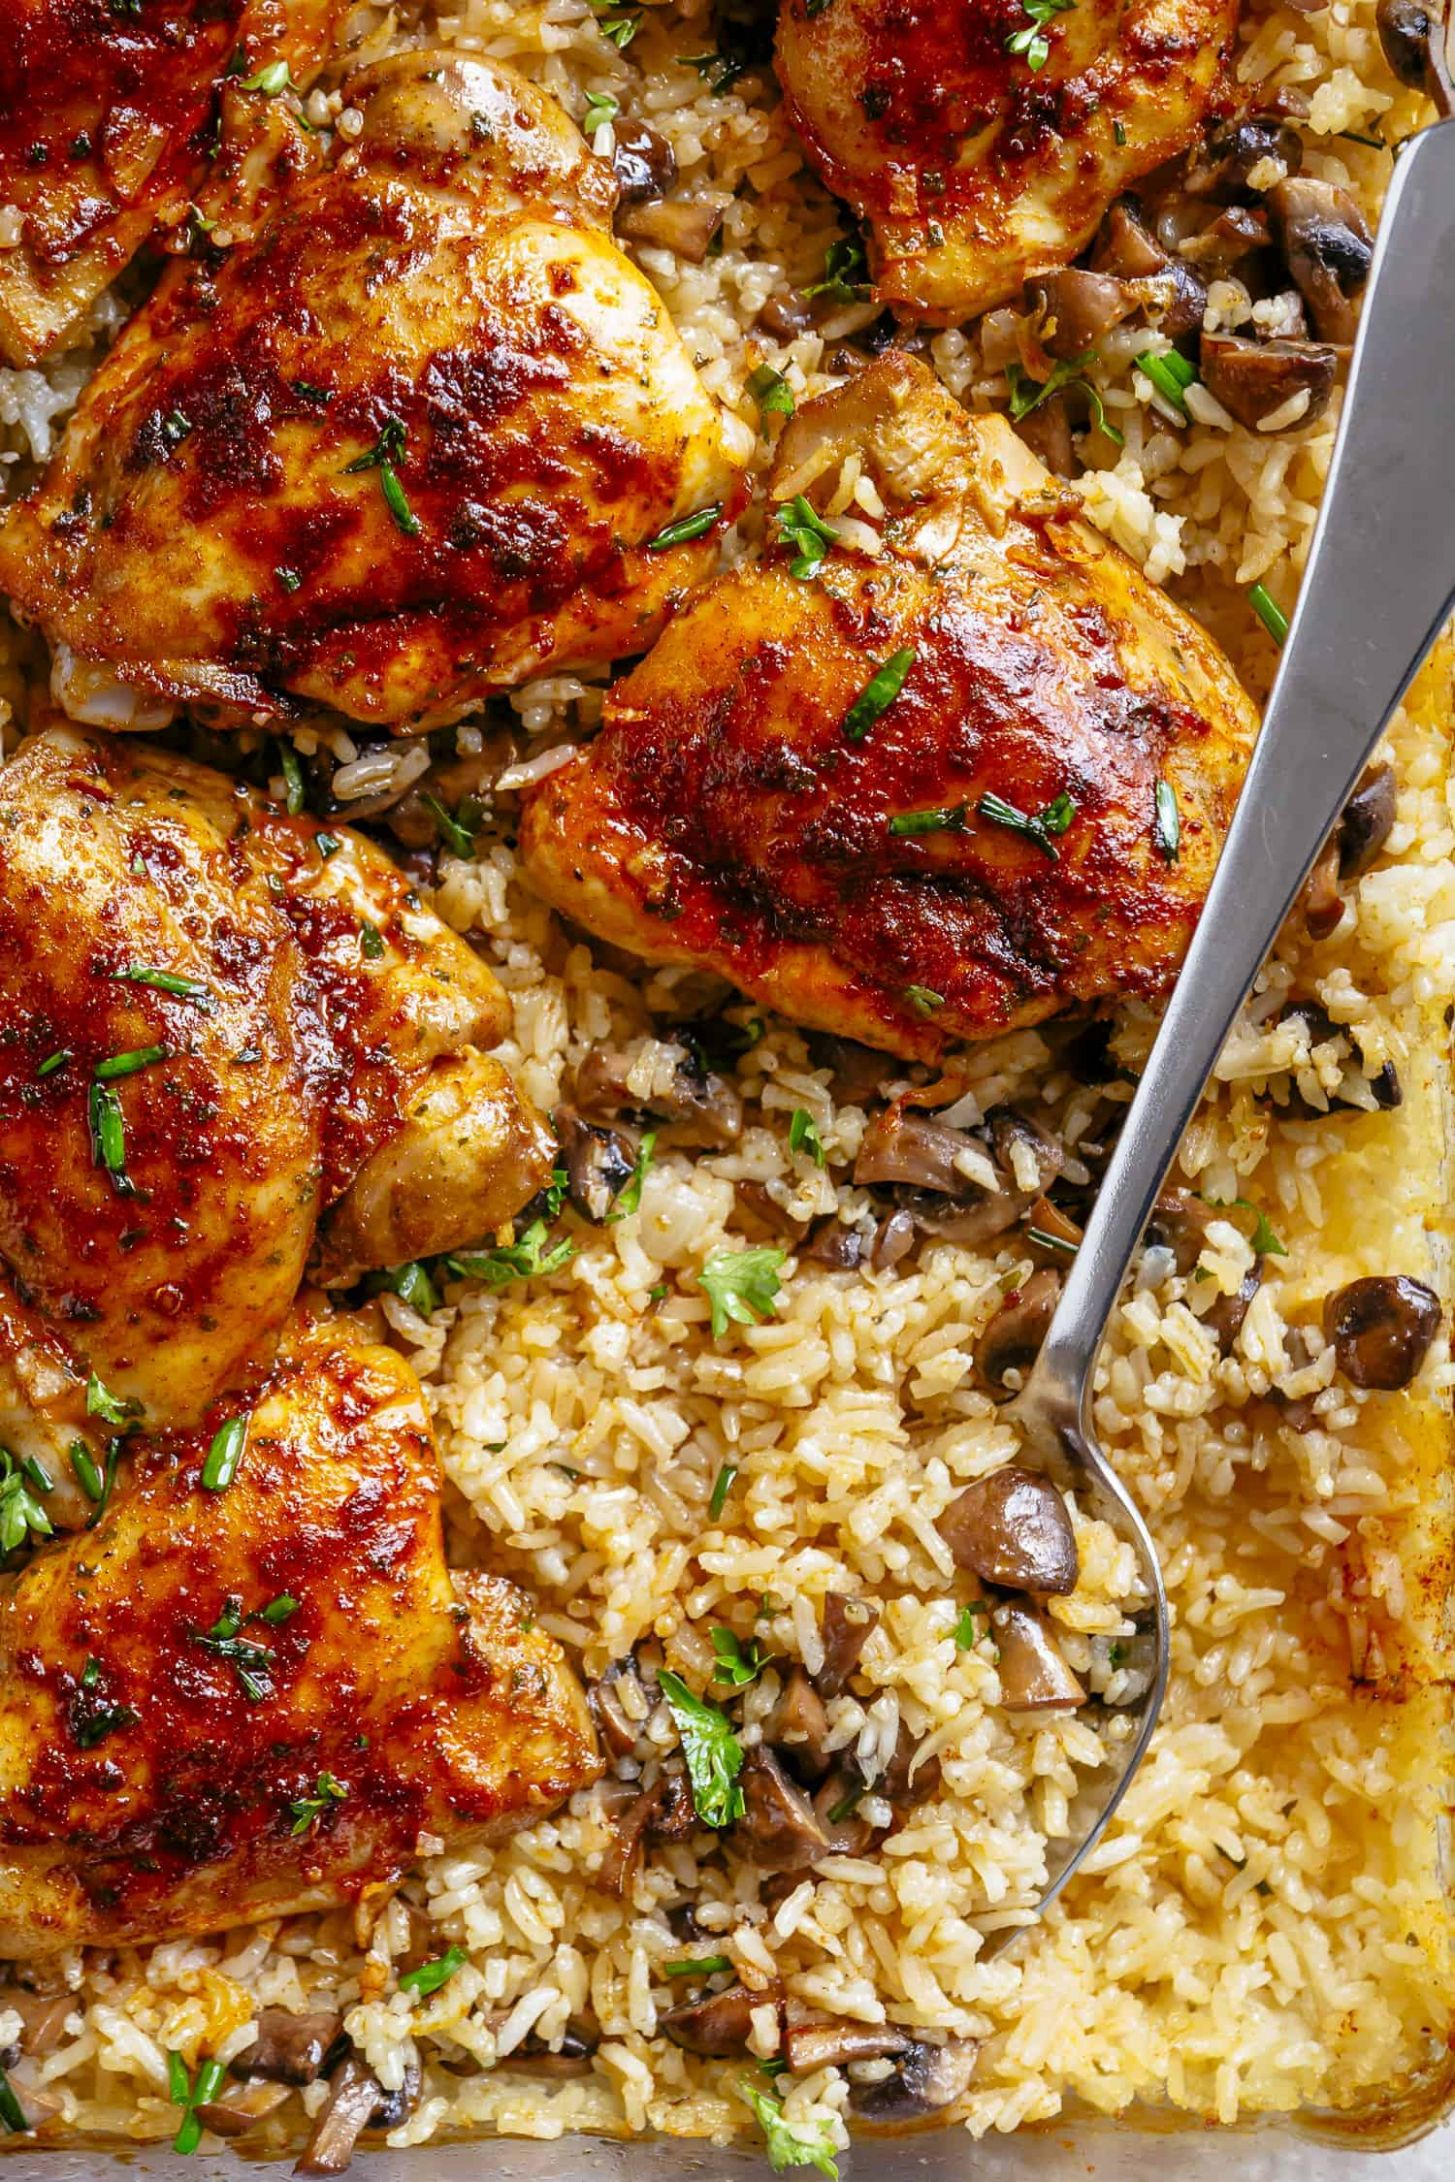 Oven Baked Chicken and Rice - Recipes Rice And Chicken